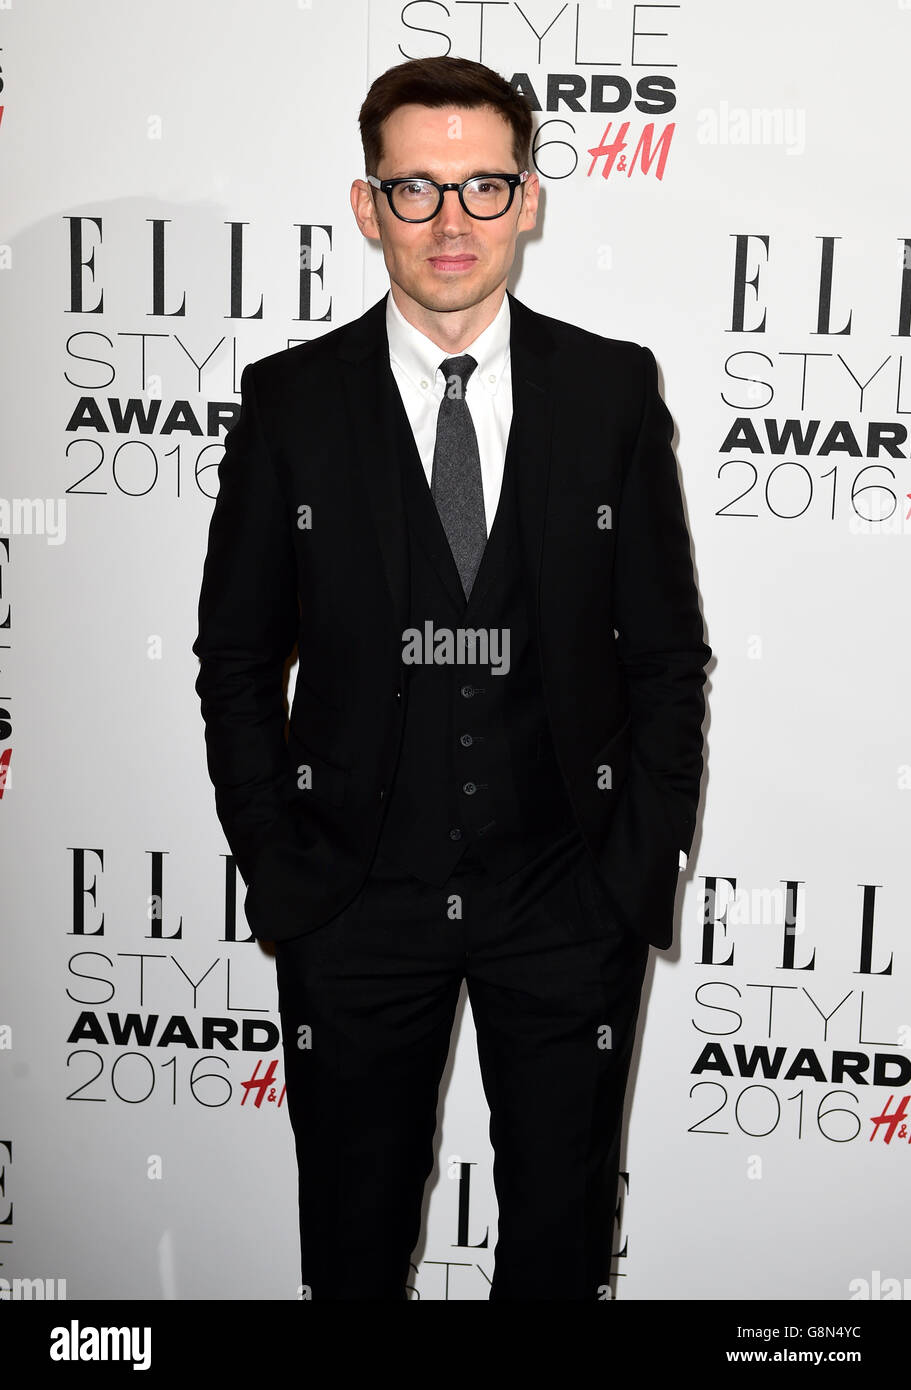 Elle Style Awards 2016 - London - Stock Image